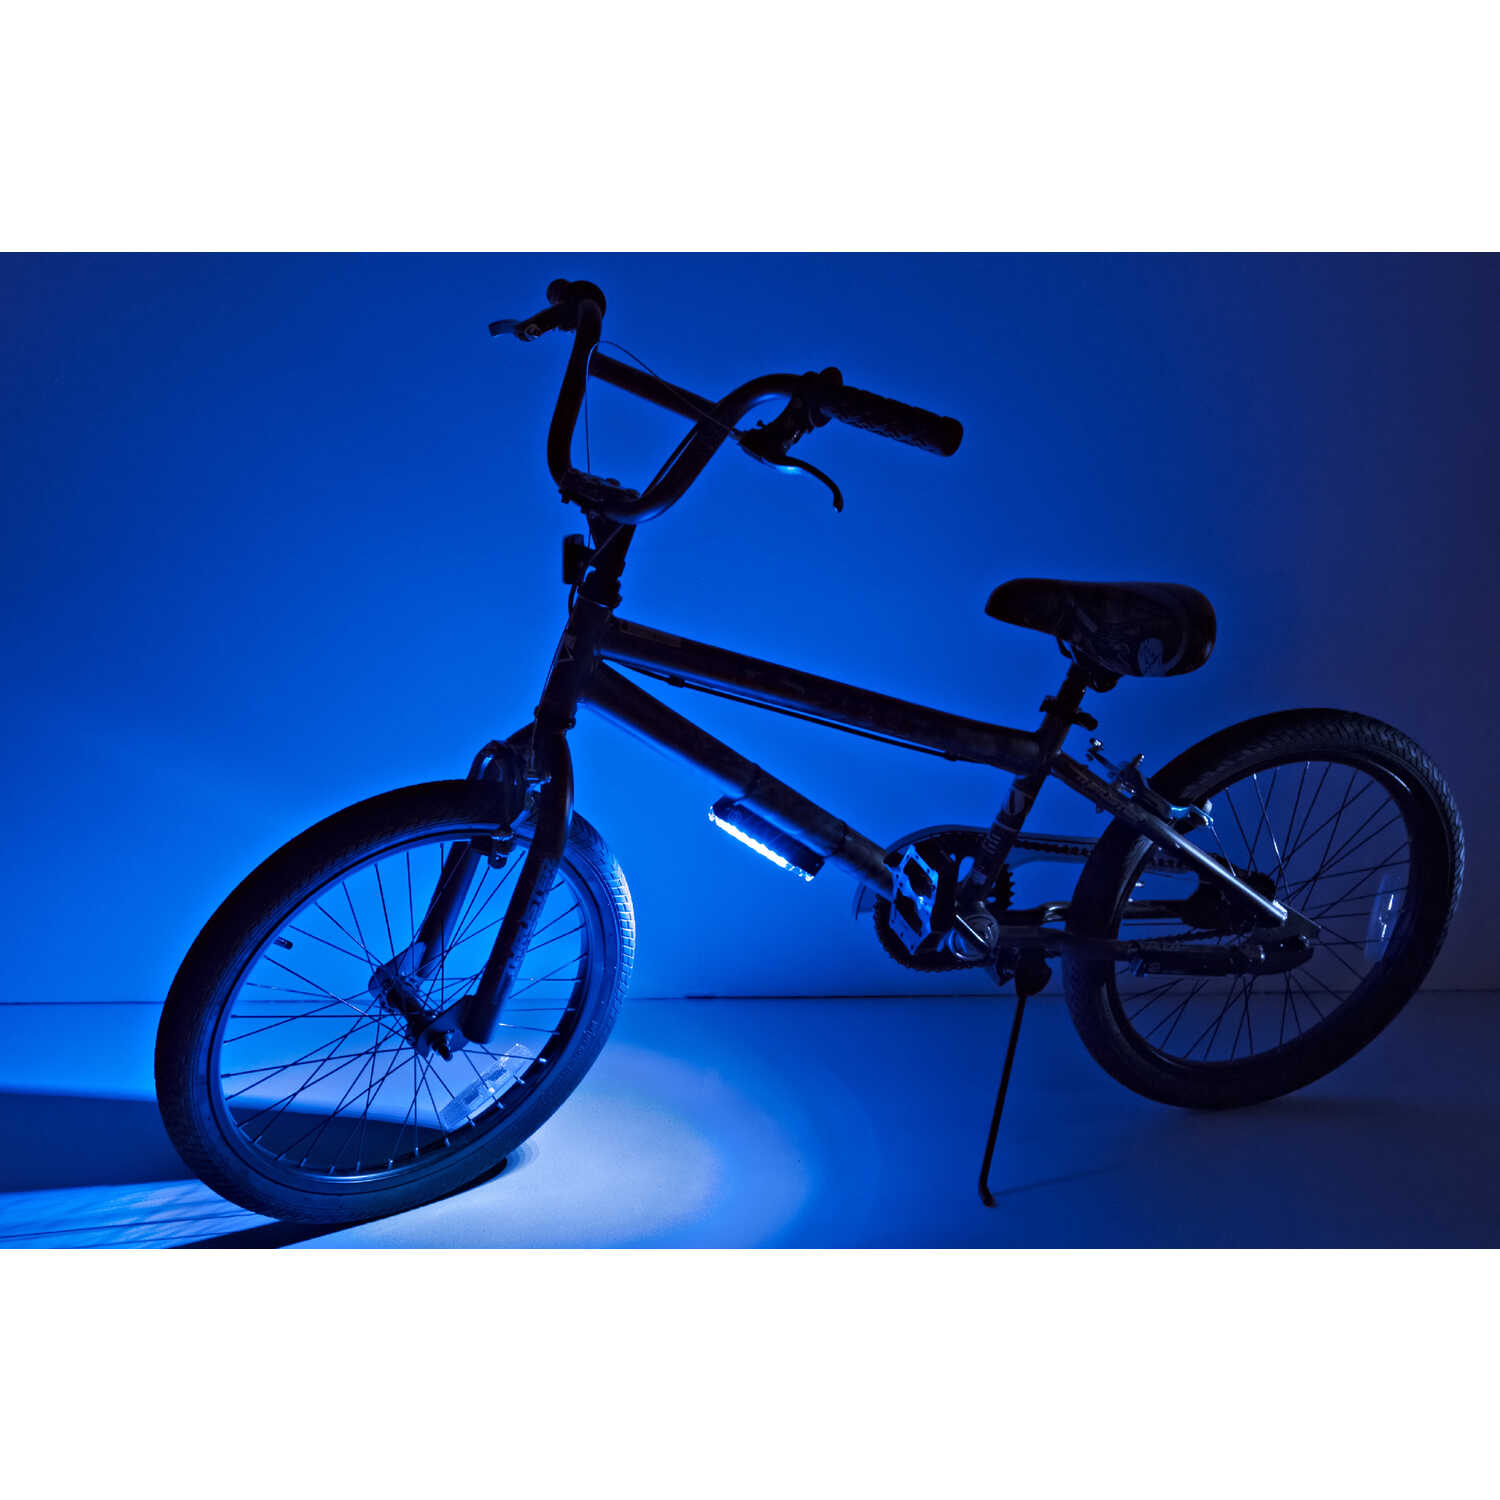 Brightz Ltd.  GoBrightz  LED Bicycle Light  ABS Plastics/Electronics  1 pk